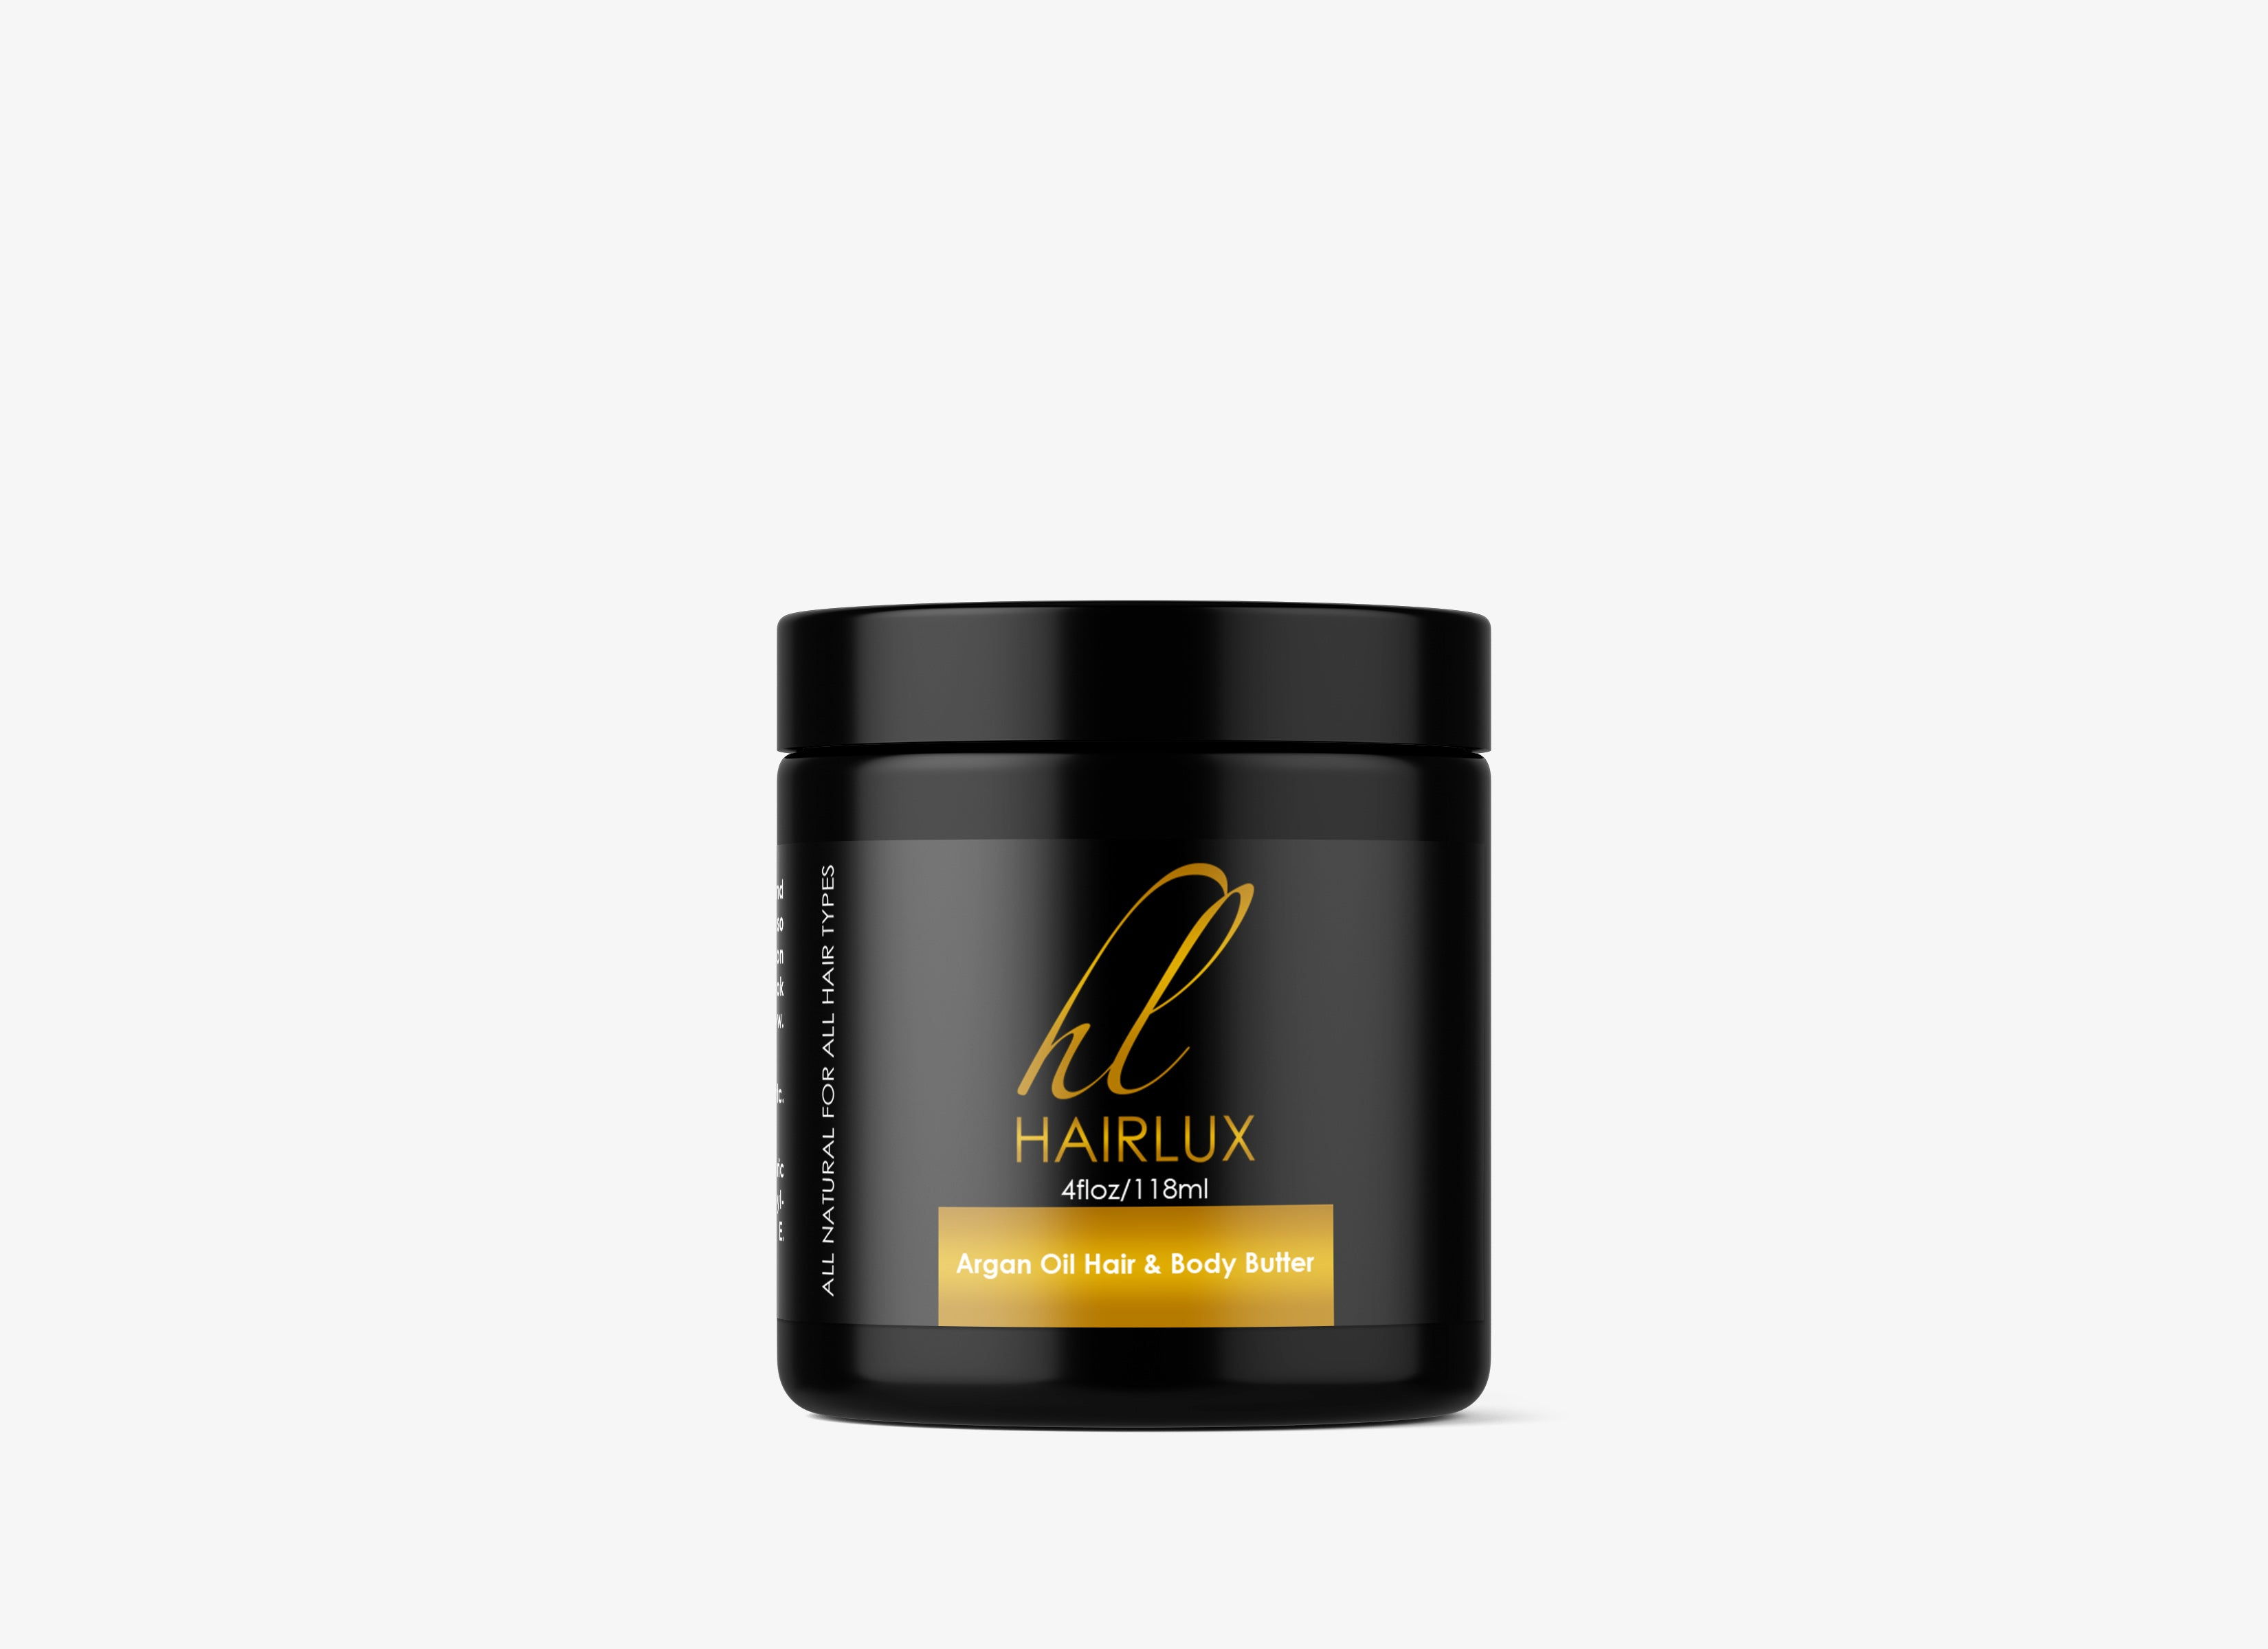 Argan Oil Hair & Body Butter